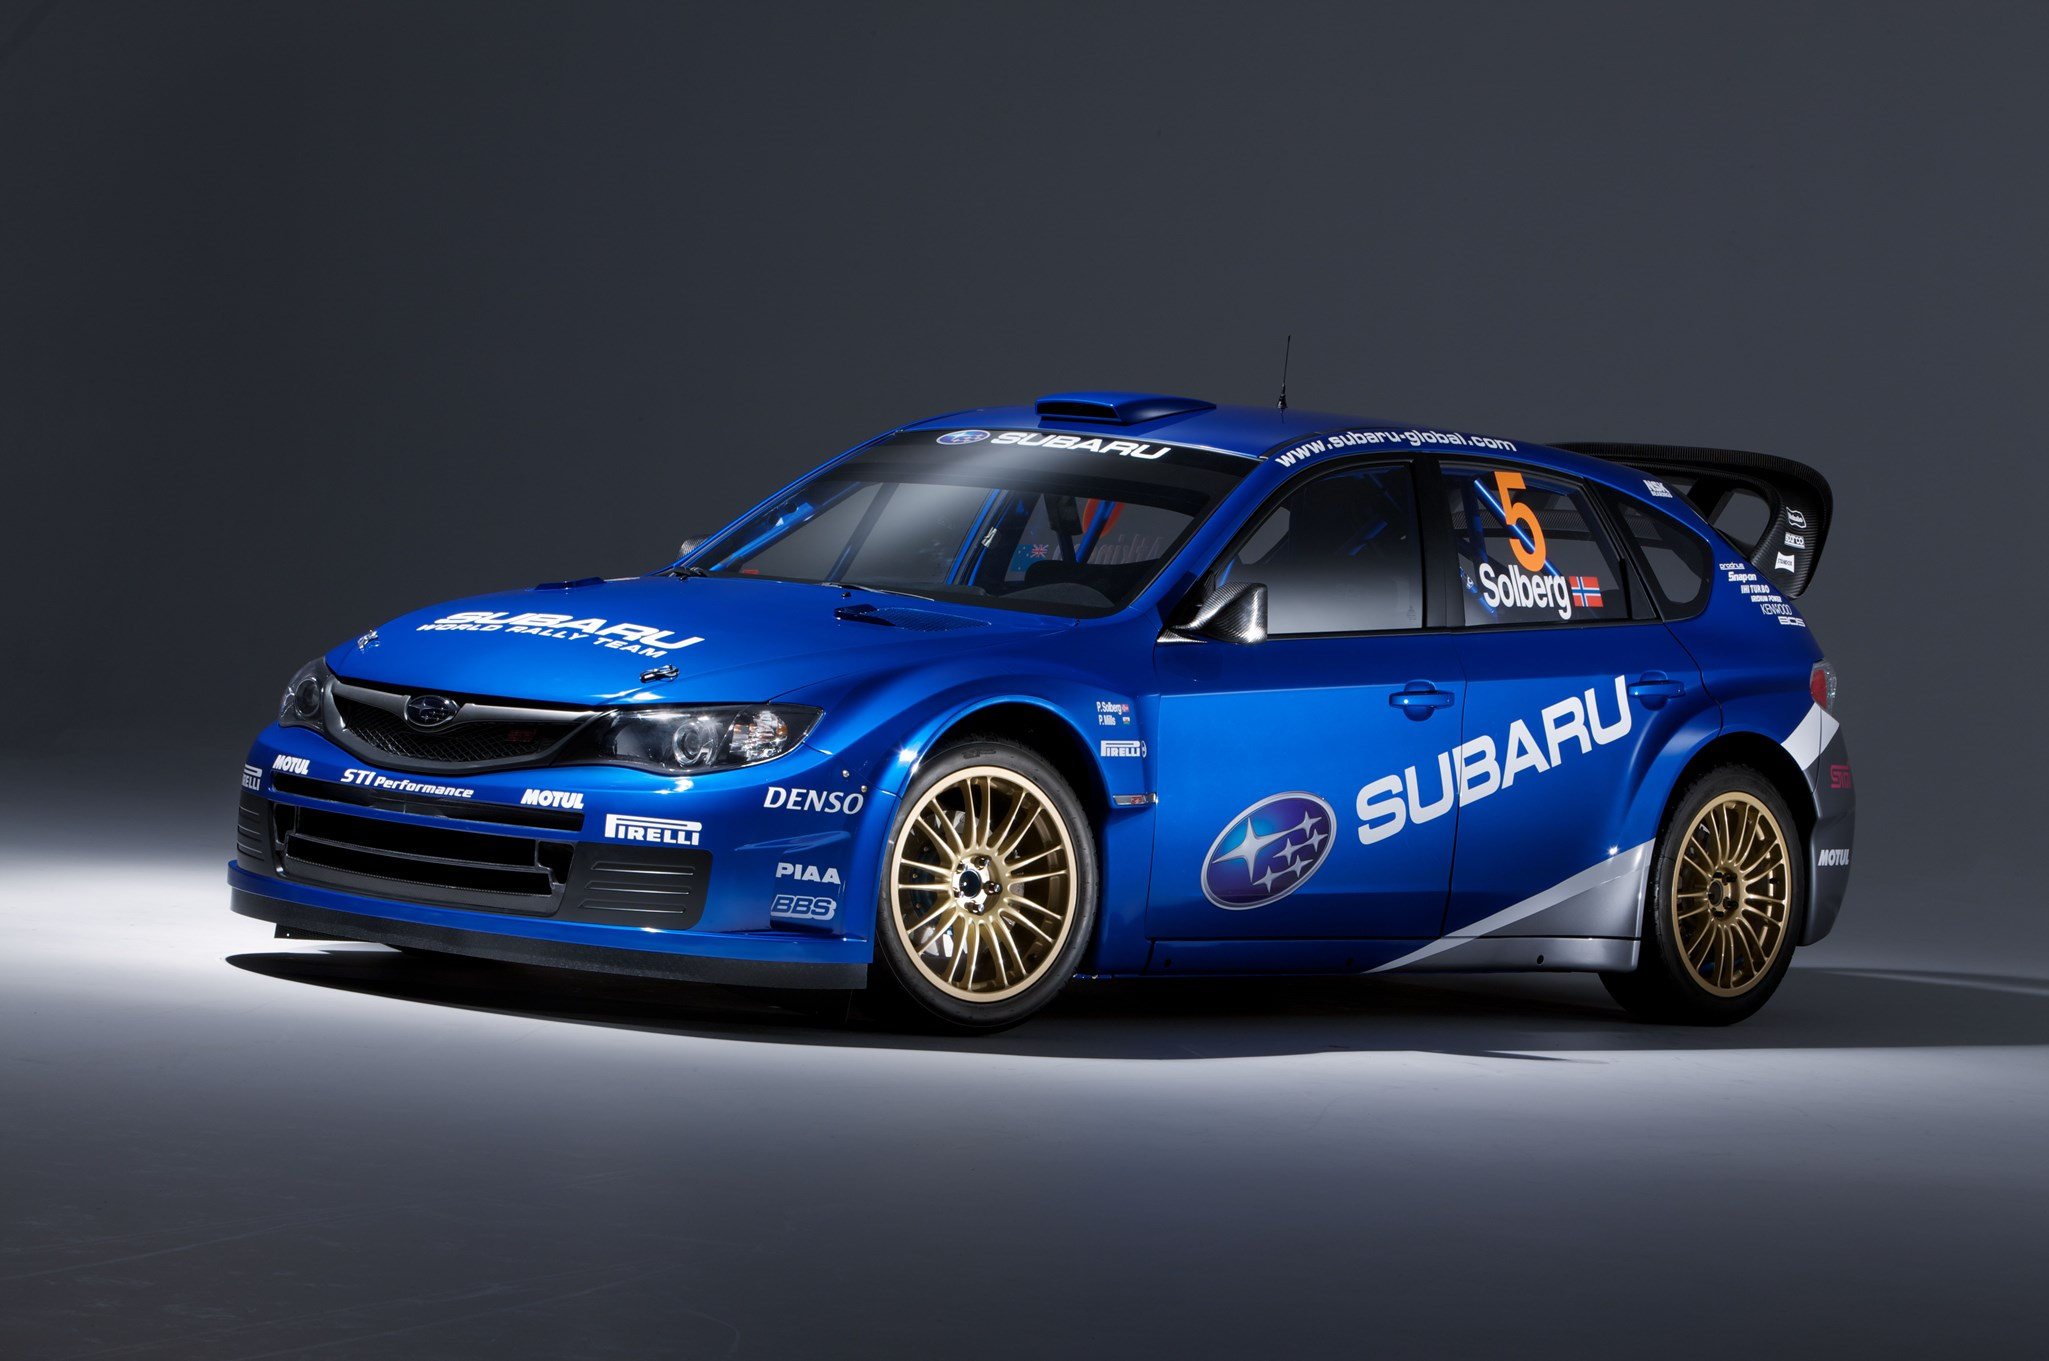 subaru s wrc impreza rally car 2008 first pictures by car magazine. Black Bedroom Furniture Sets. Home Design Ideas